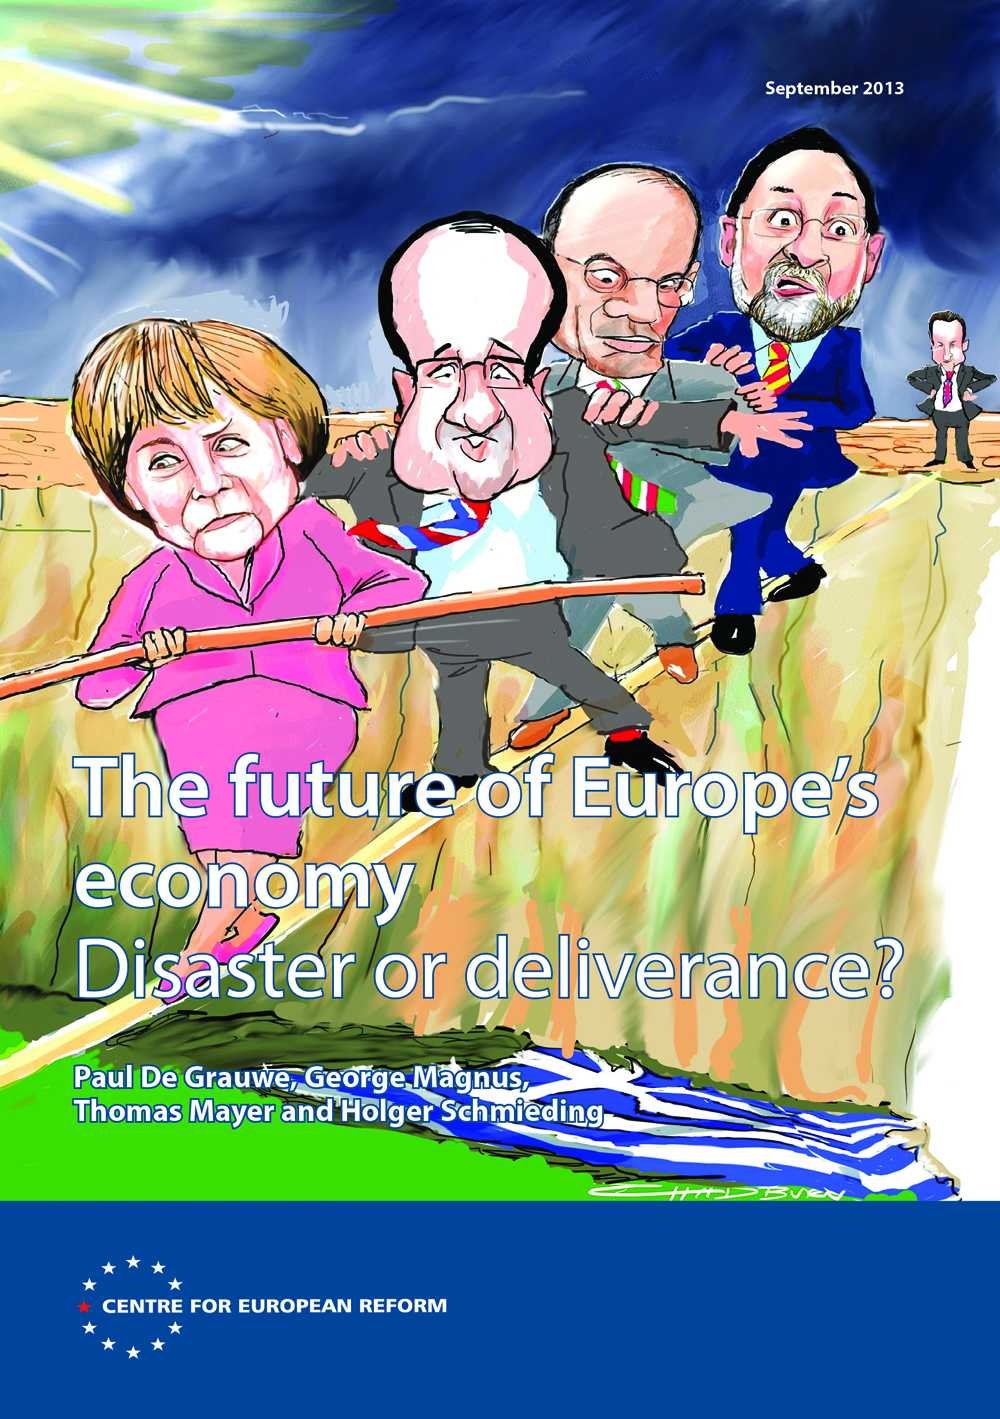 The future of Europe's economy: Disaster or deliverance?